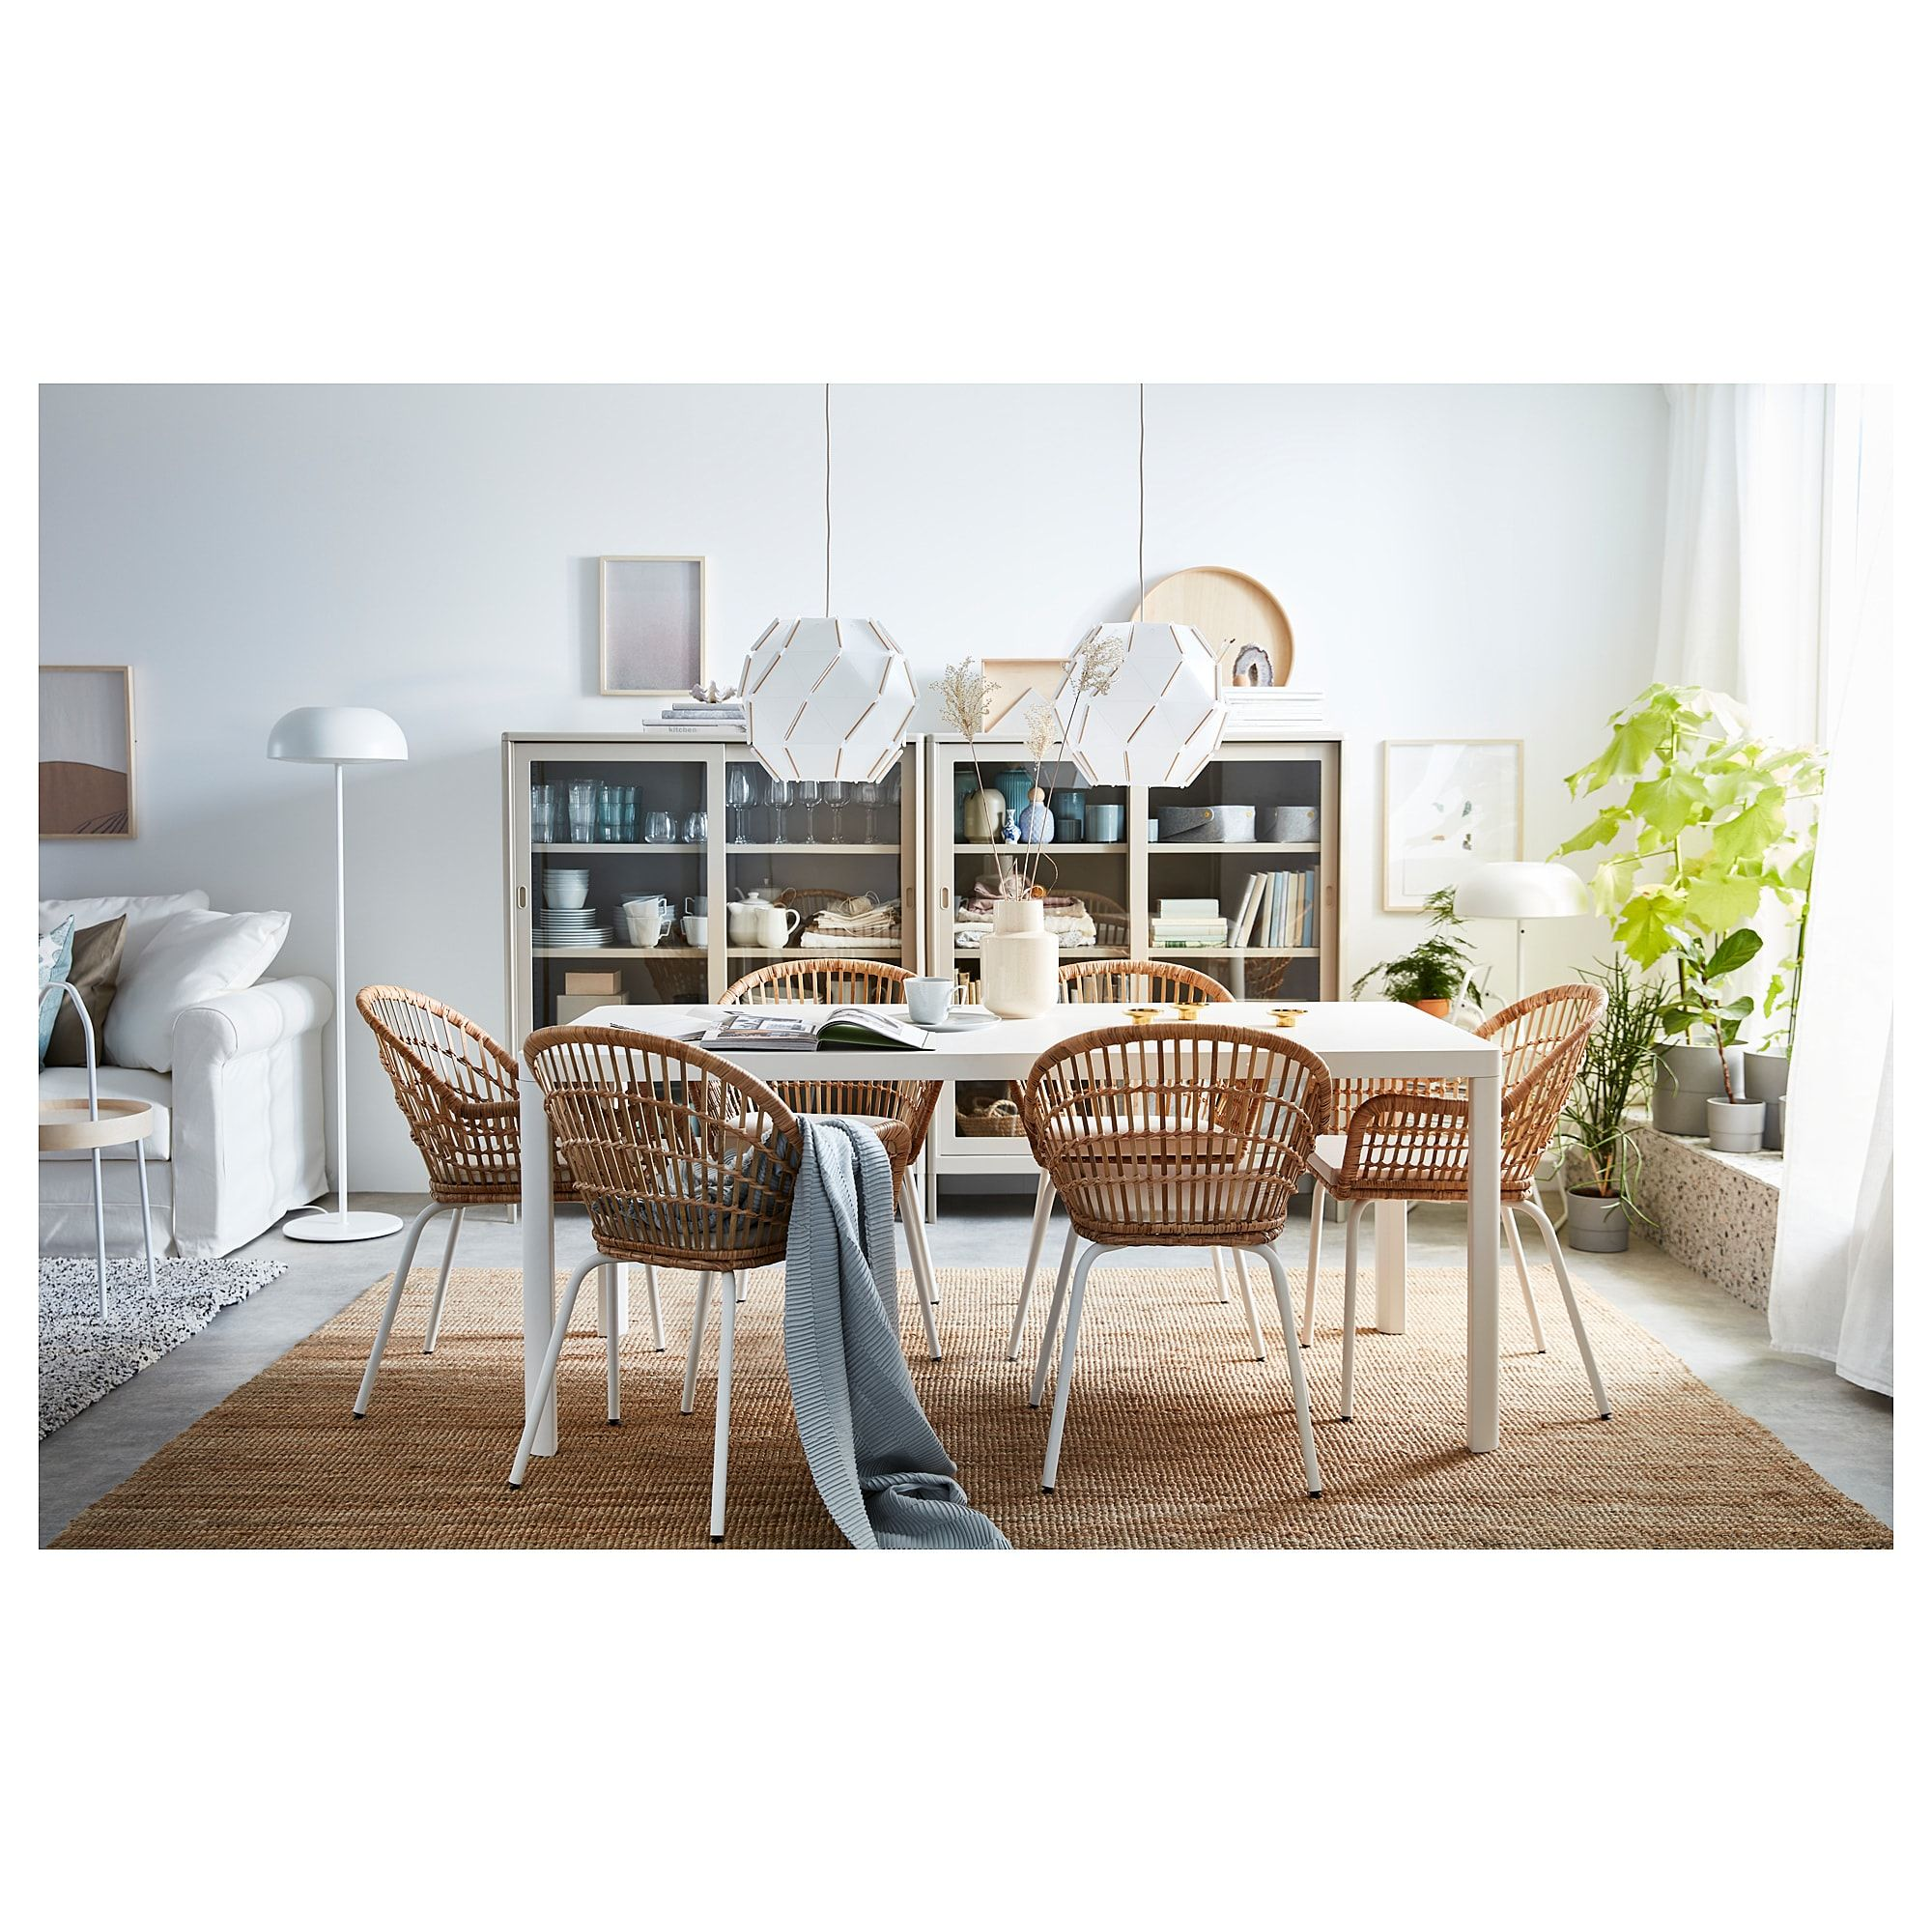 Nilsove Chair With Armrests Rattan White In 2019 Dining